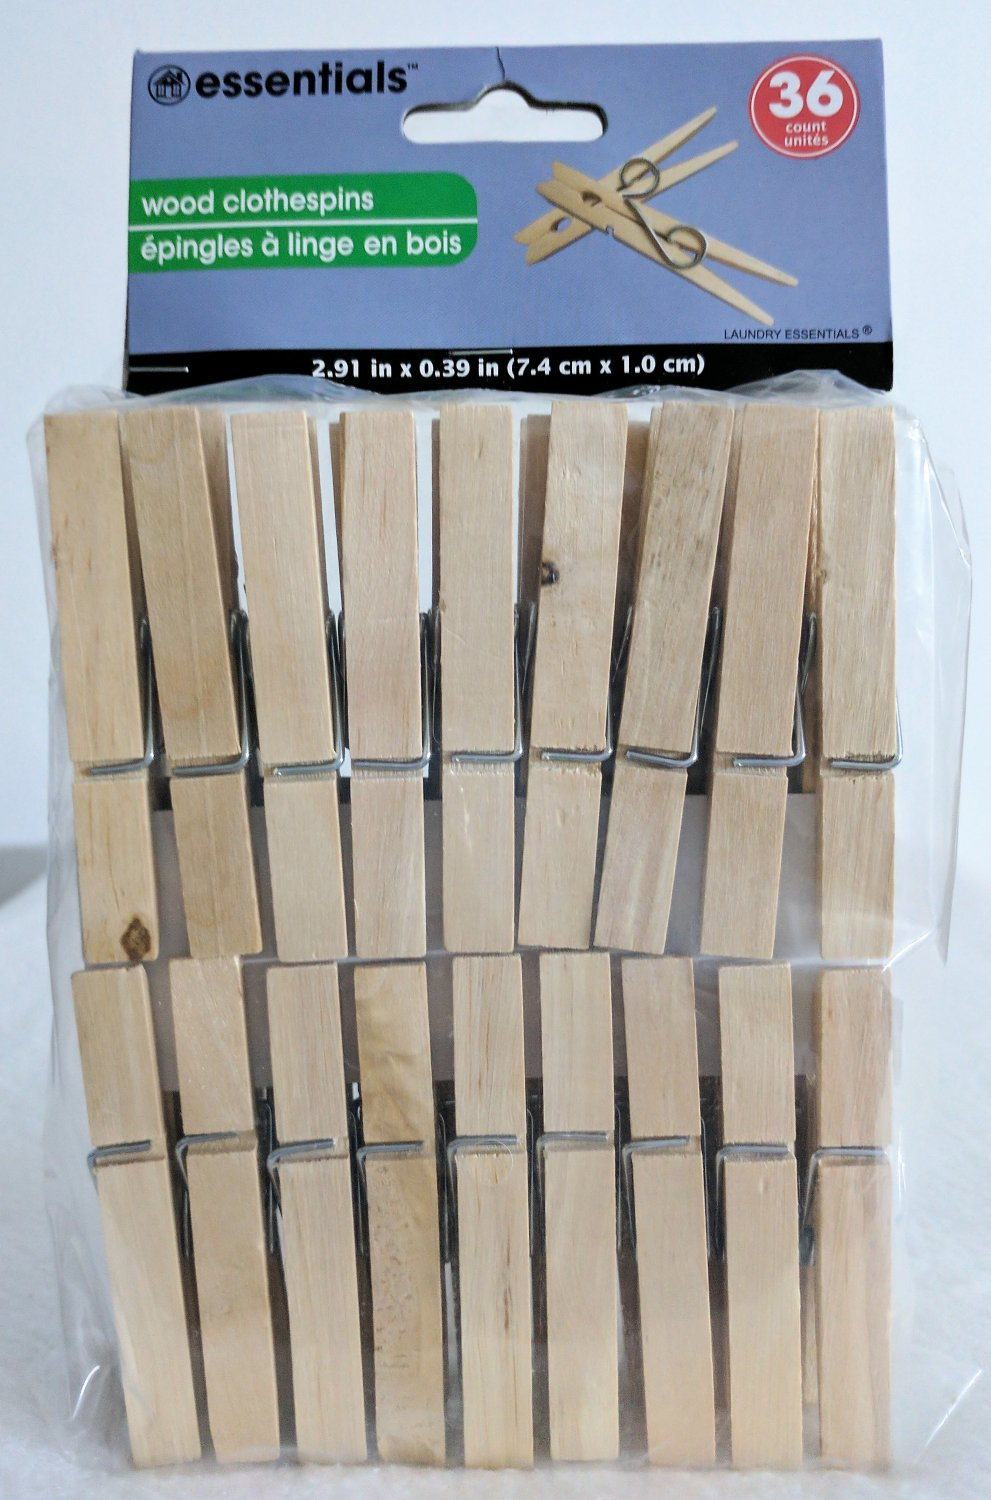 36 Count Wood Clothespins, Laundry Essentials® Wooden Clothespins Size2.91�x.39""